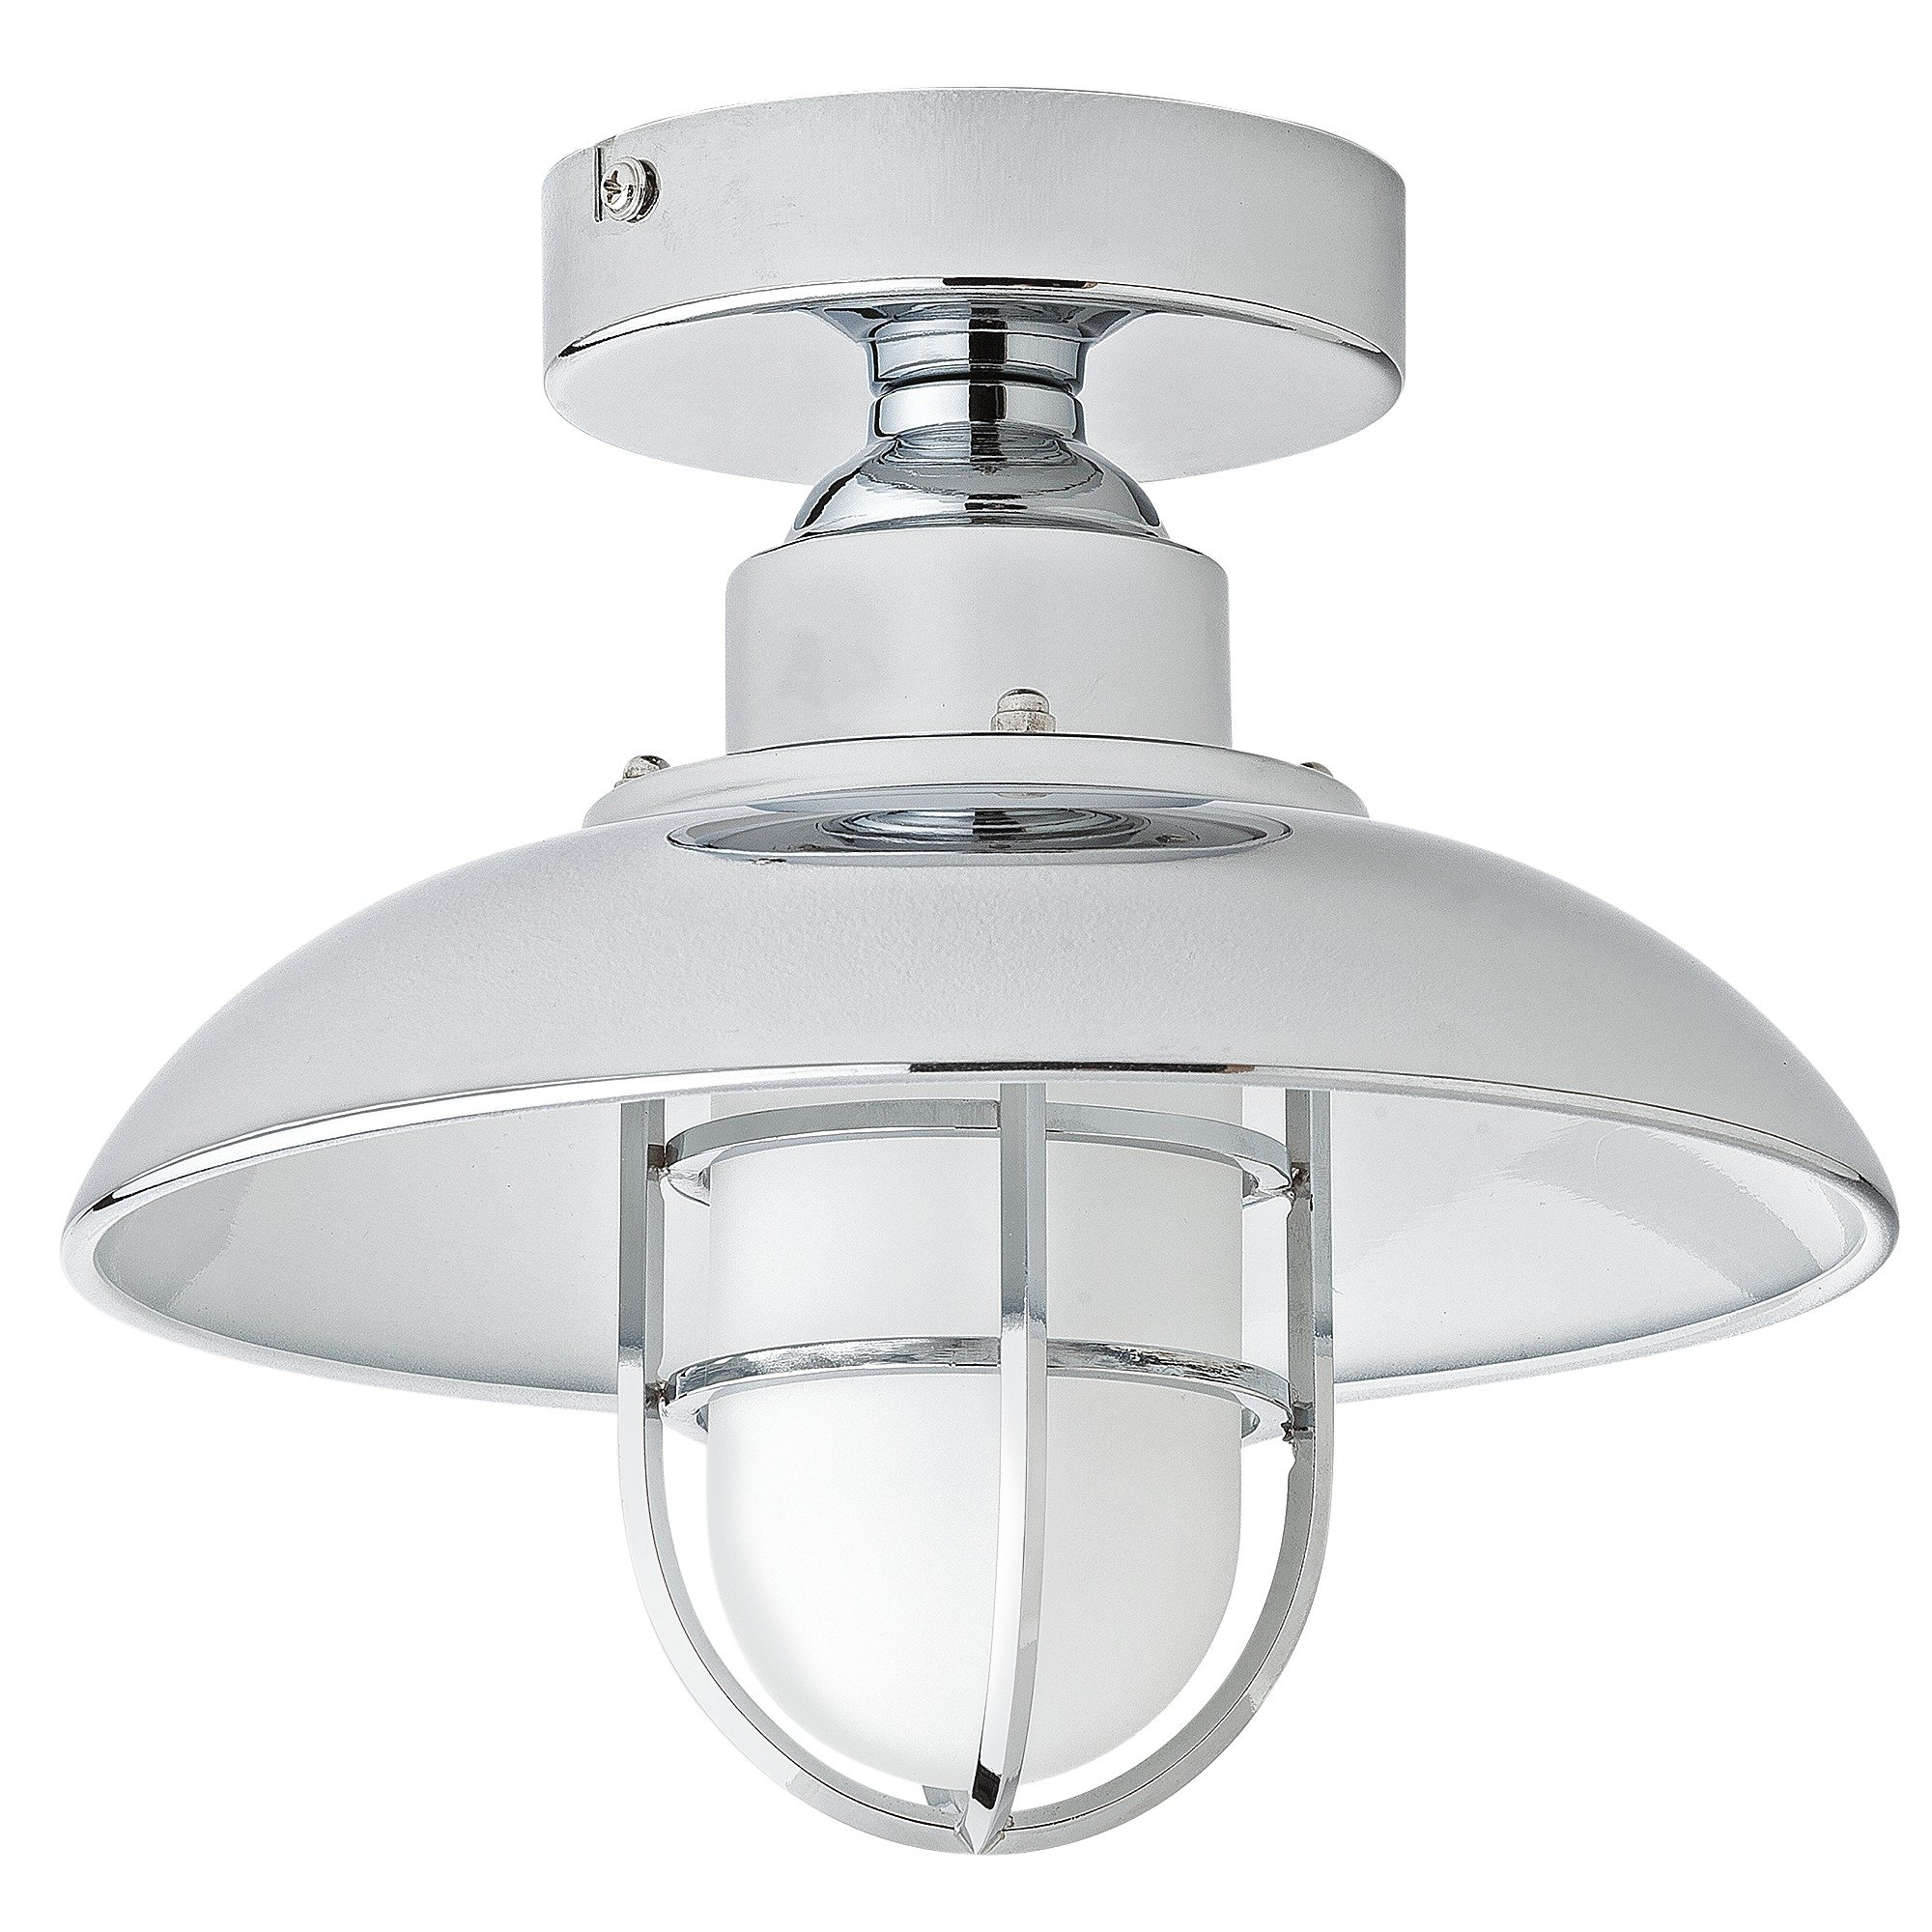 bathroom lighting online buy collection kildare fisherman lantern bathroom light 10919